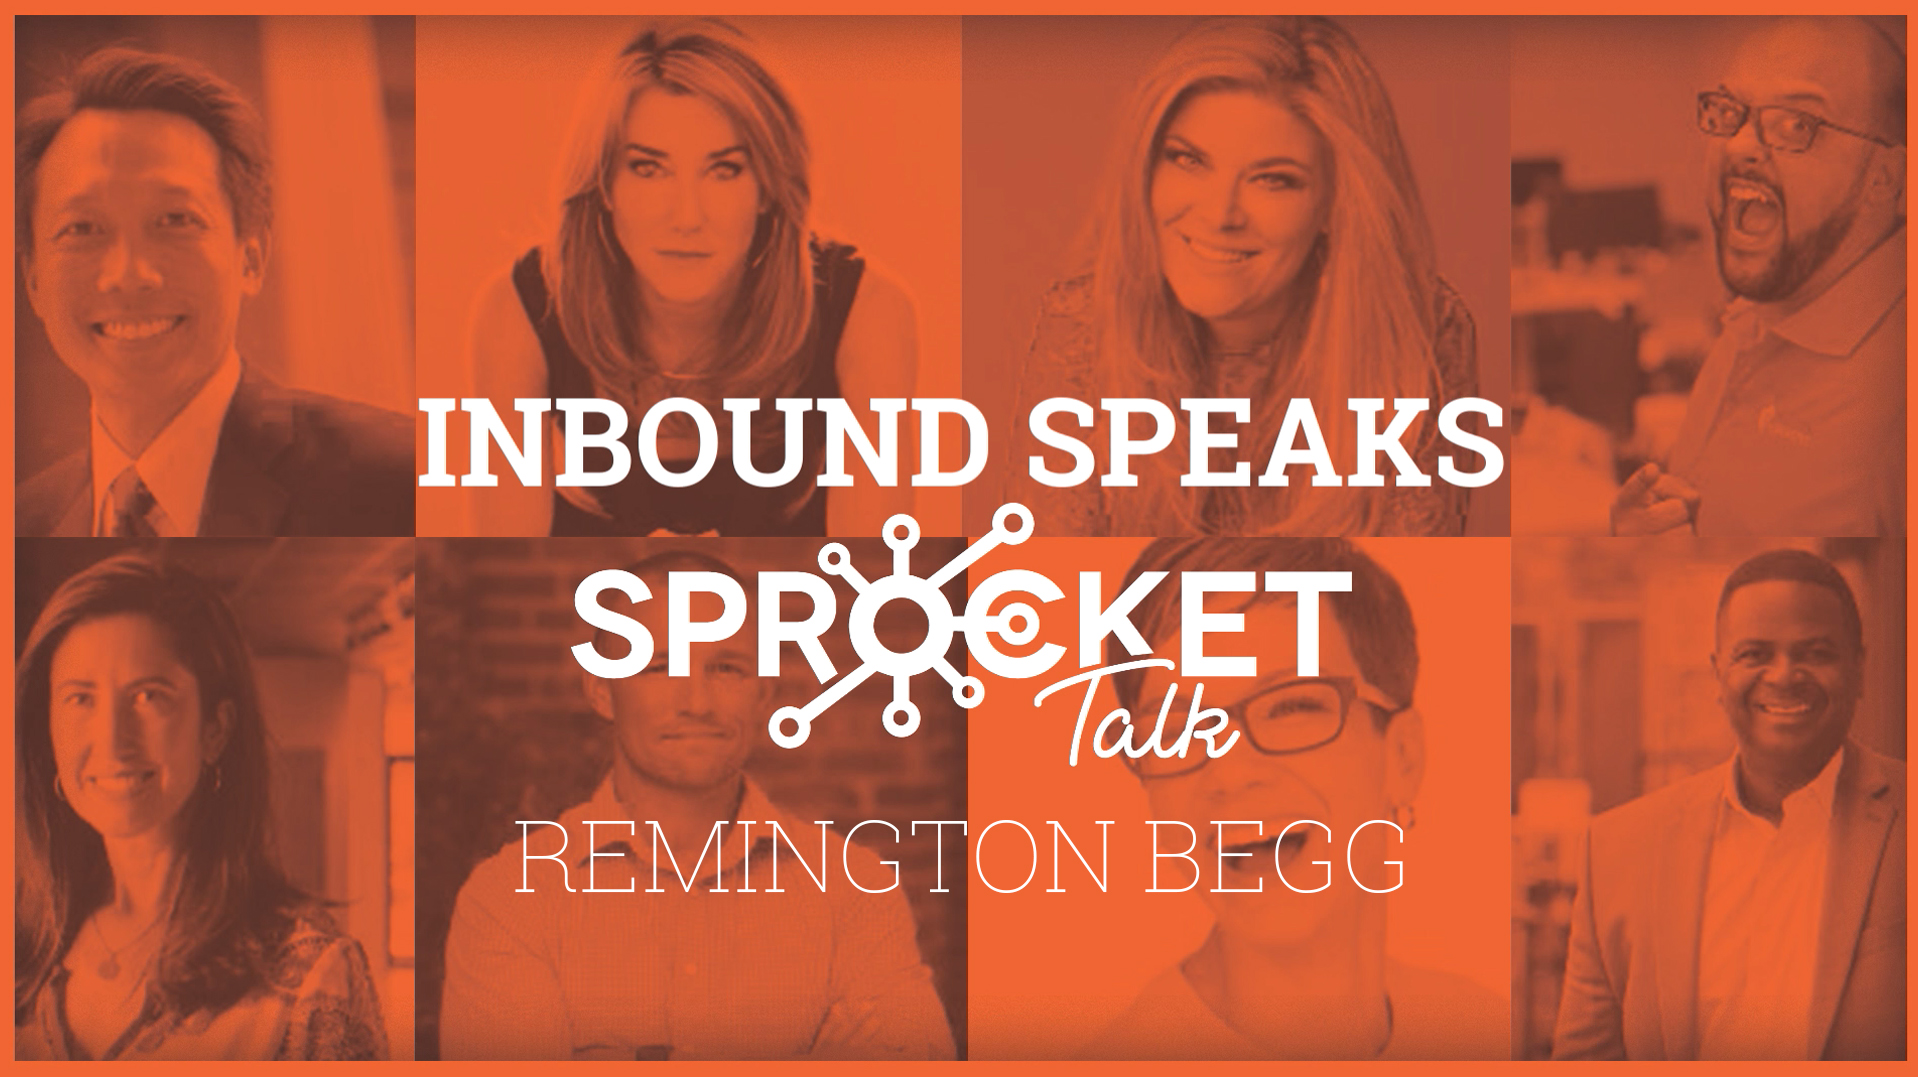 Remington Begg 6 Amazing HubSpot Conversational Marketing & Sales Strategies That Drive Revenue Inbound 19 Speaker